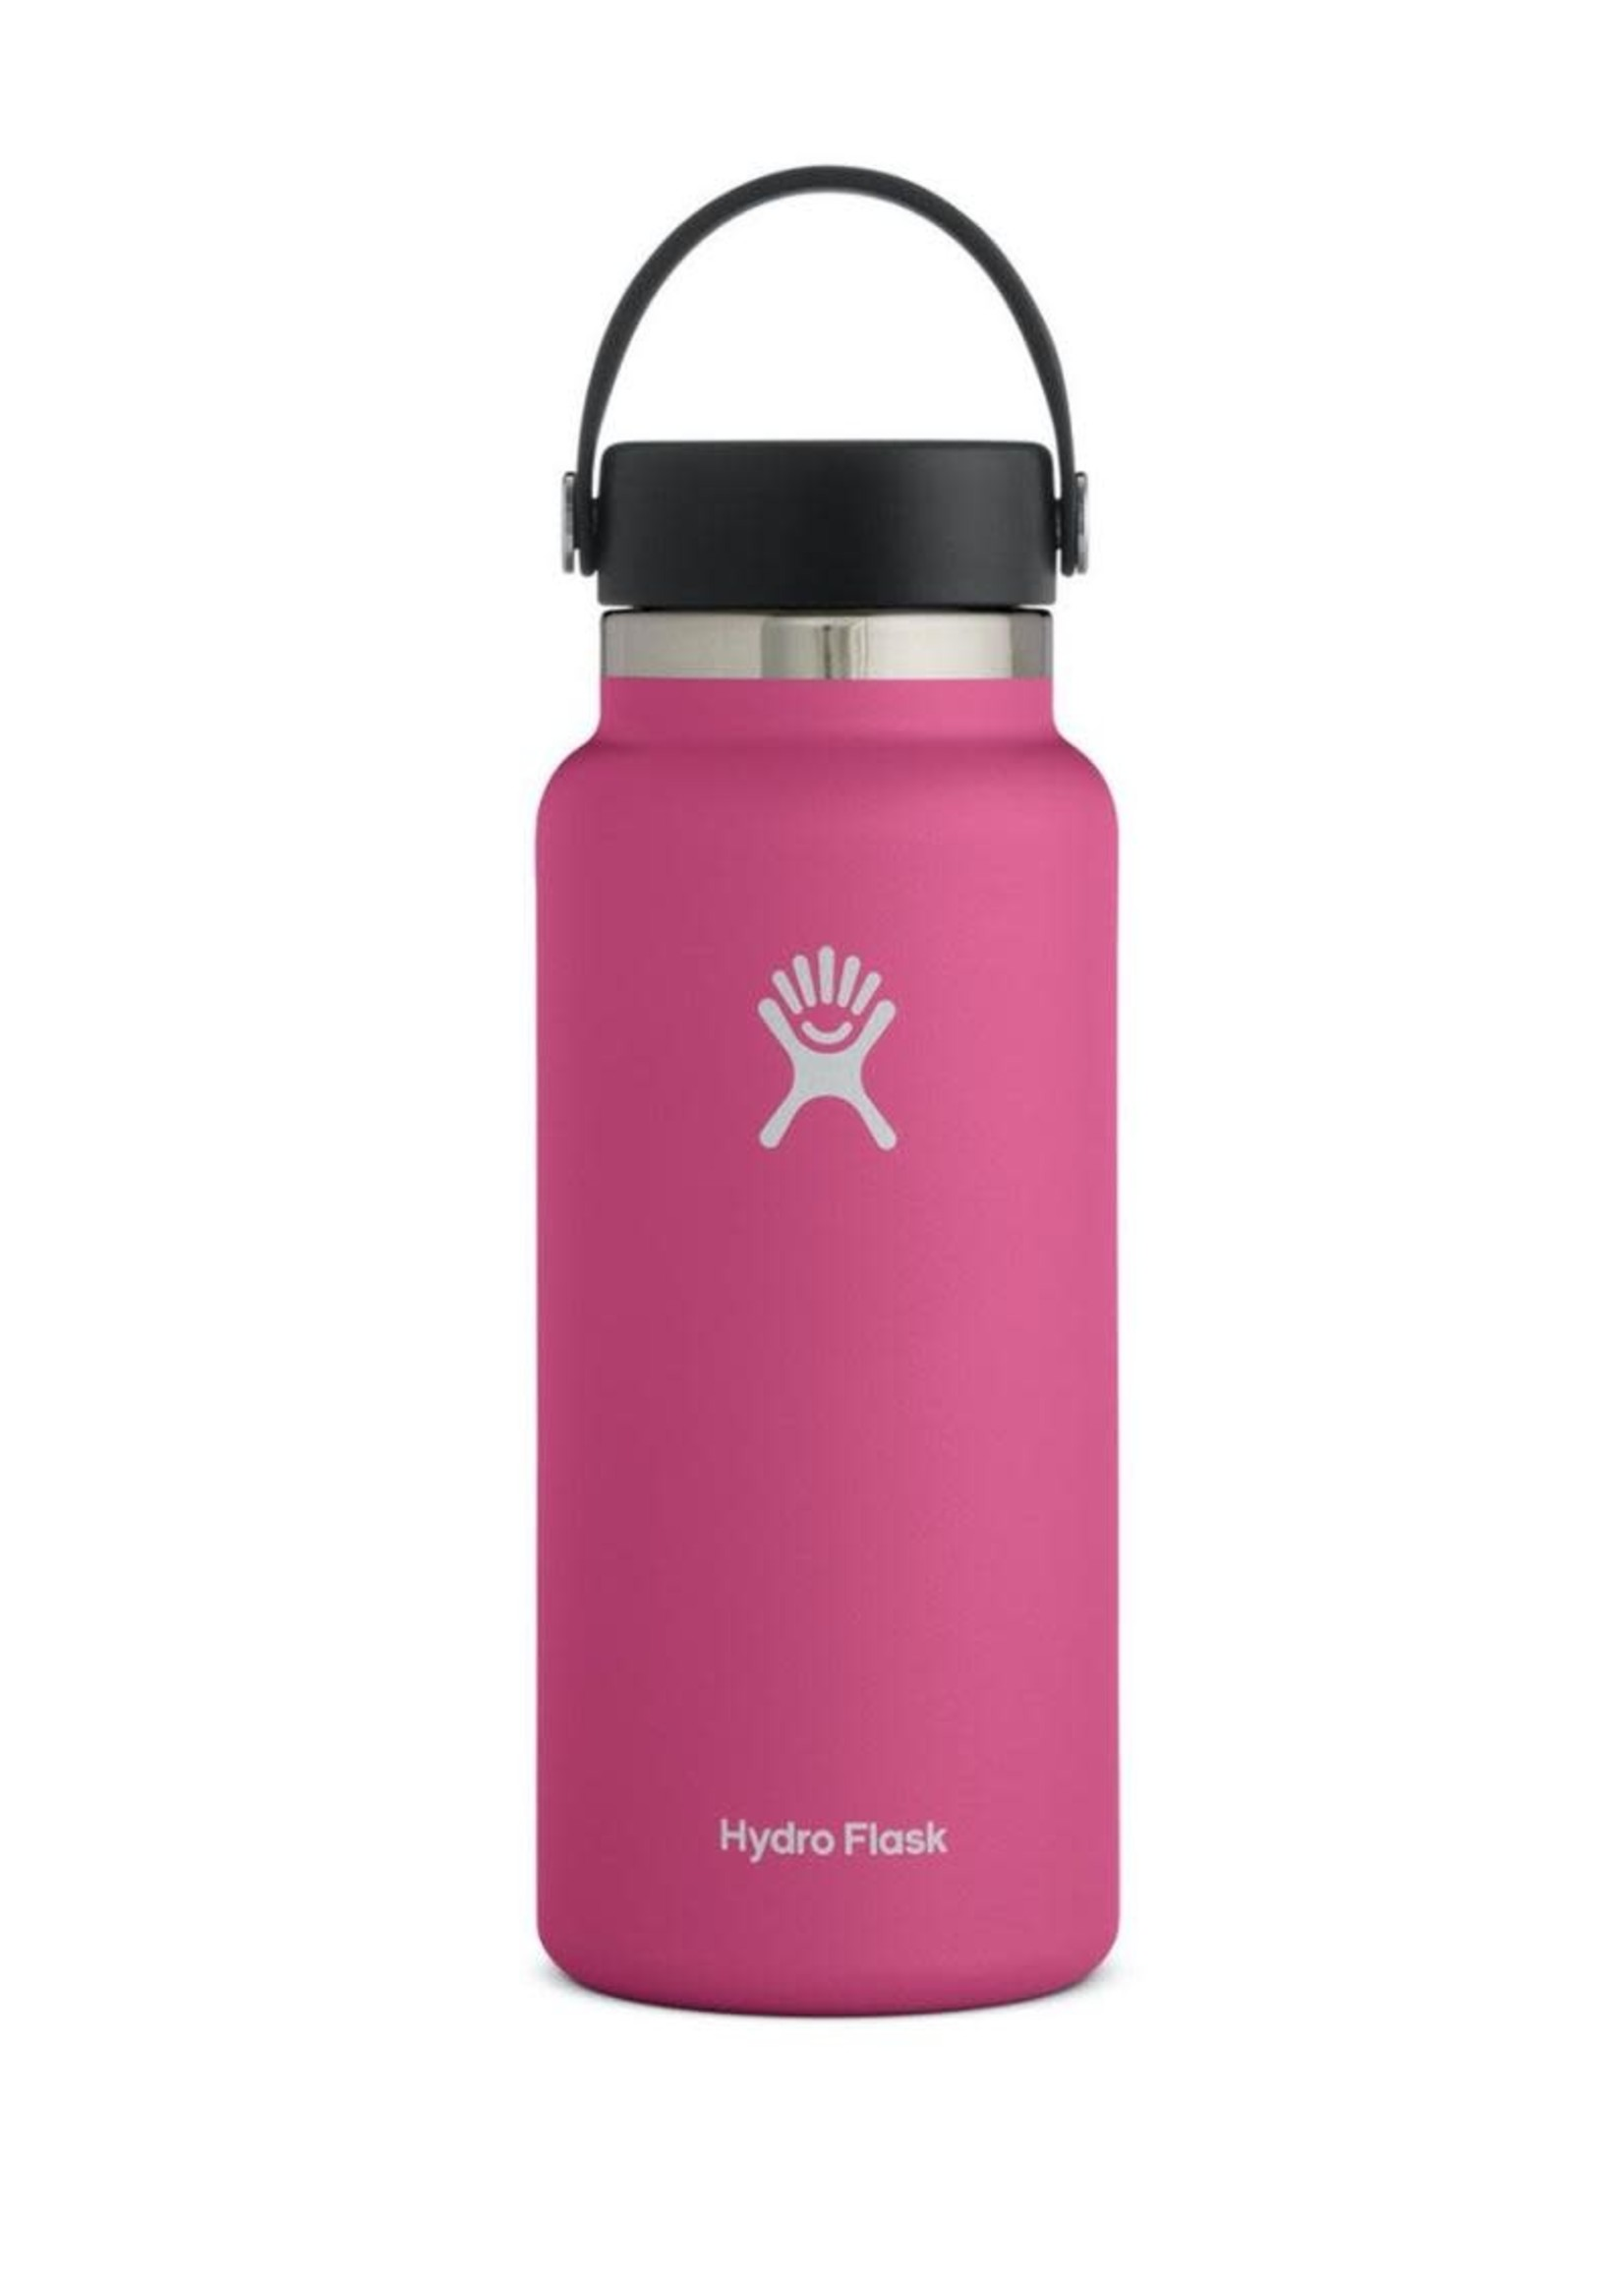 Hydro Flask Hydro Flask, 32 oz Wide Mouth 2.0  Flex Cap Insulated Stainless Steel Bottle in Carnation